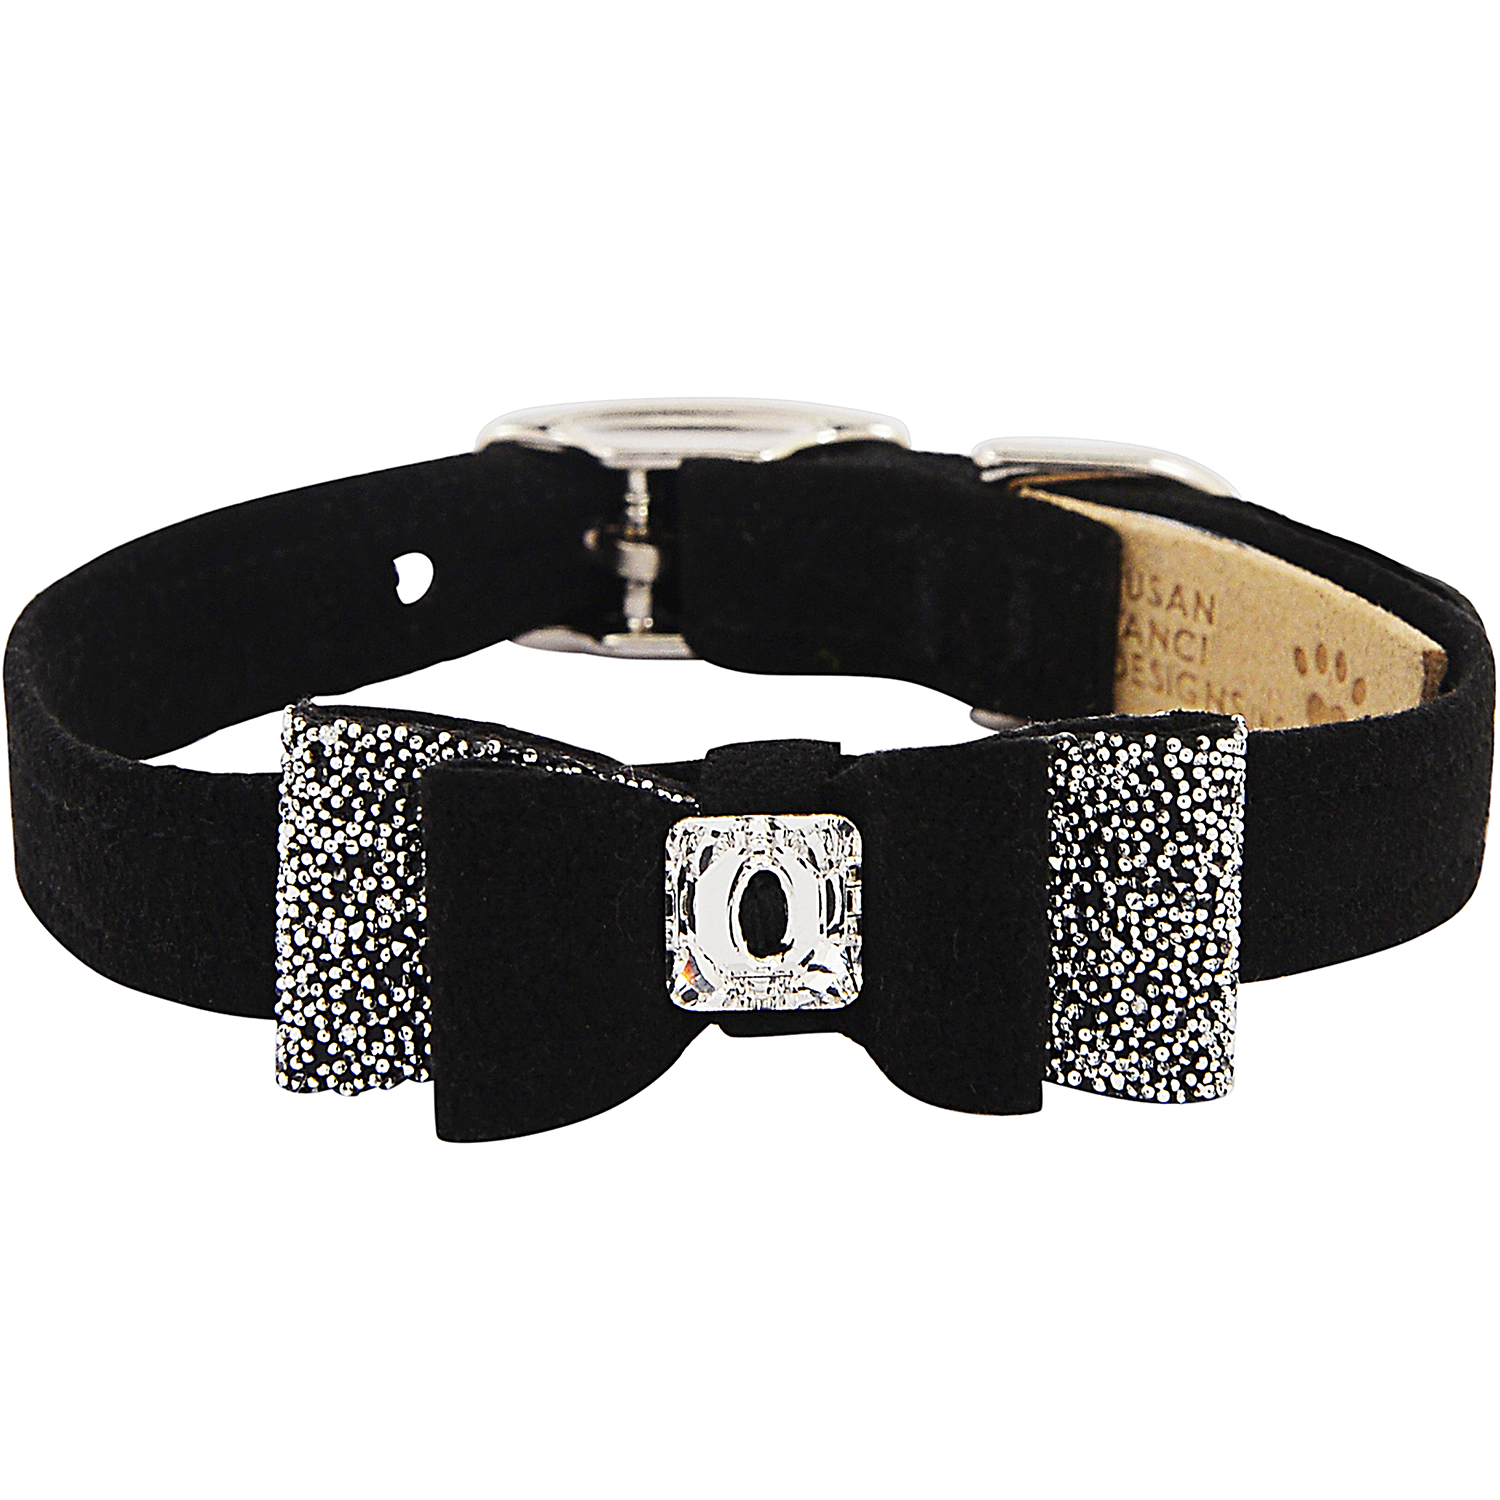 Crystal Stellar Big Bow Pet Collar: Black